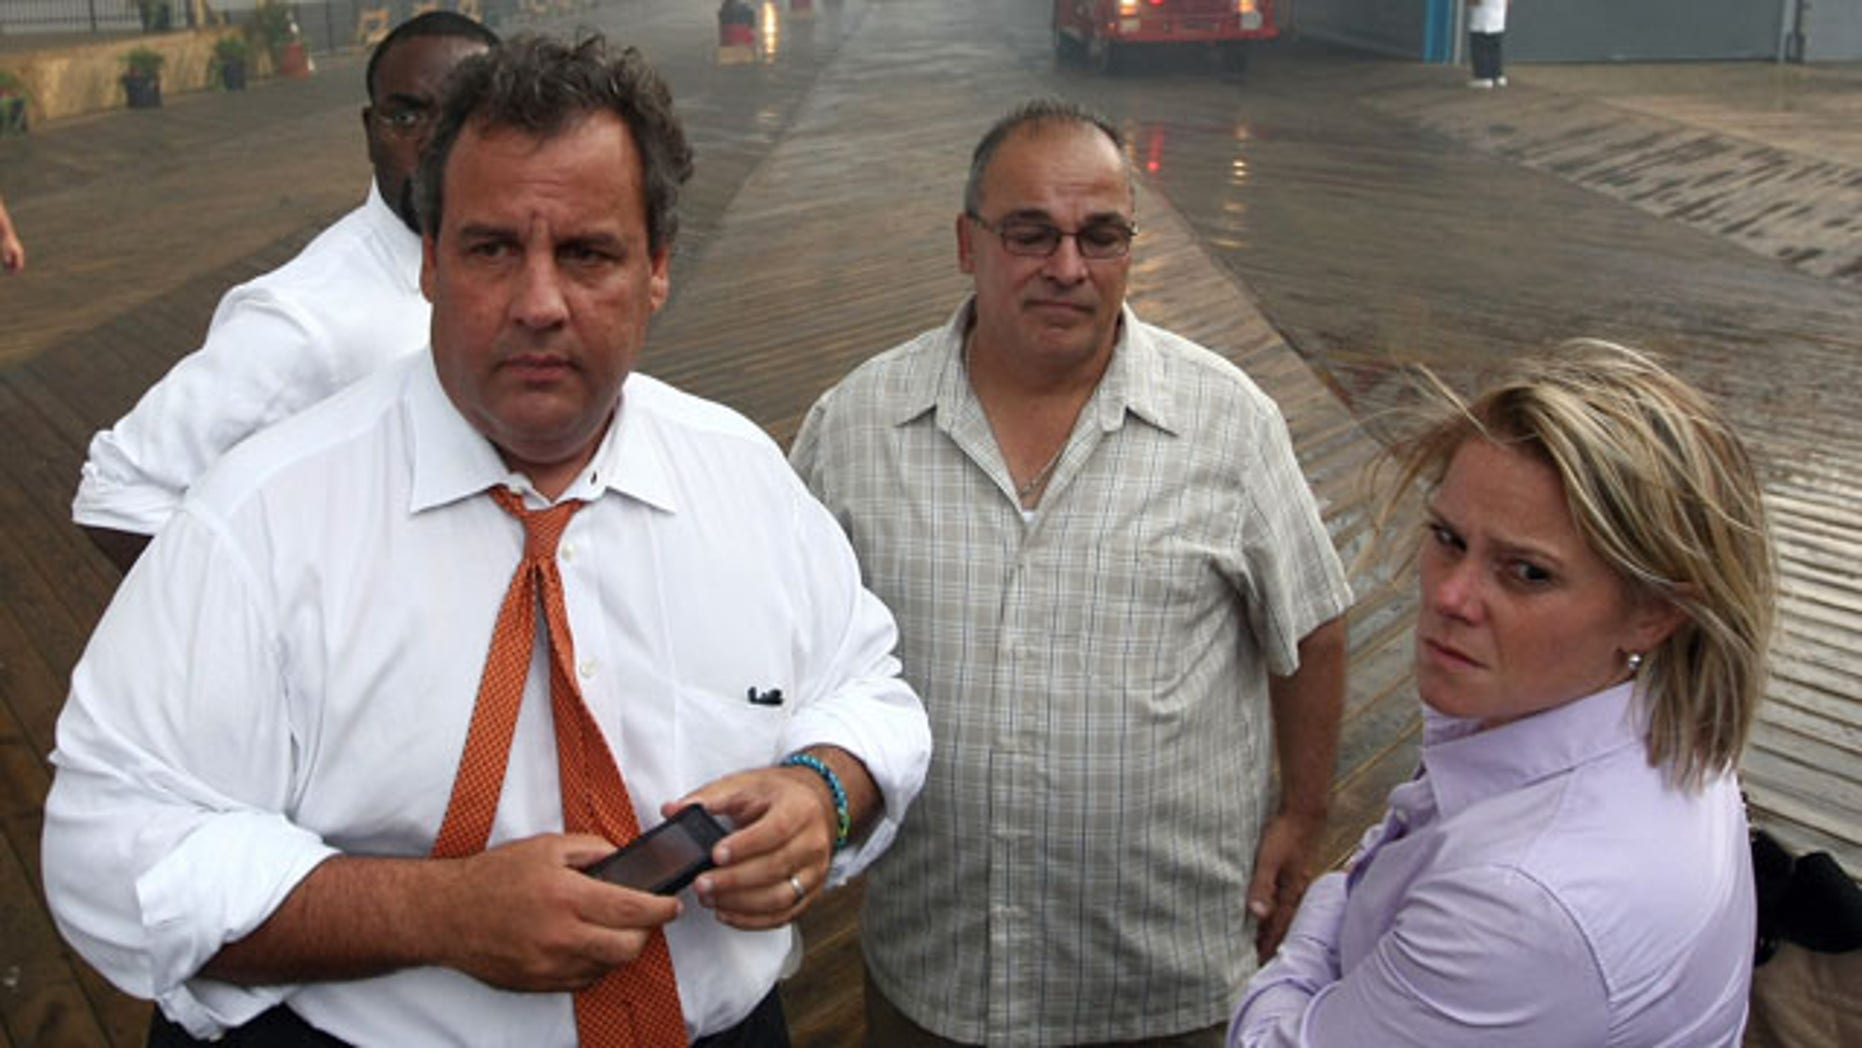 """September 12, 2013: Deputy Chief of Staff Bridget Anne Kelly, right, stands with Gov. Chris Christie, left, during a tour of the Seaside Heights, N.J. boardwalk after it was hit by a massive fire. Christie fired Kelly Thursday, Jan. 9, 2014, and apologized over and over for his staff's """"stupid"""" behavior, insisting during a nearly two-hour news conference that he had no idea anyone around him had engineered traffic jams as part of a political vendetta against a Democratic mayor. (AP Photo/Office of Gov. Chris Christie, Tim Larsen)"""